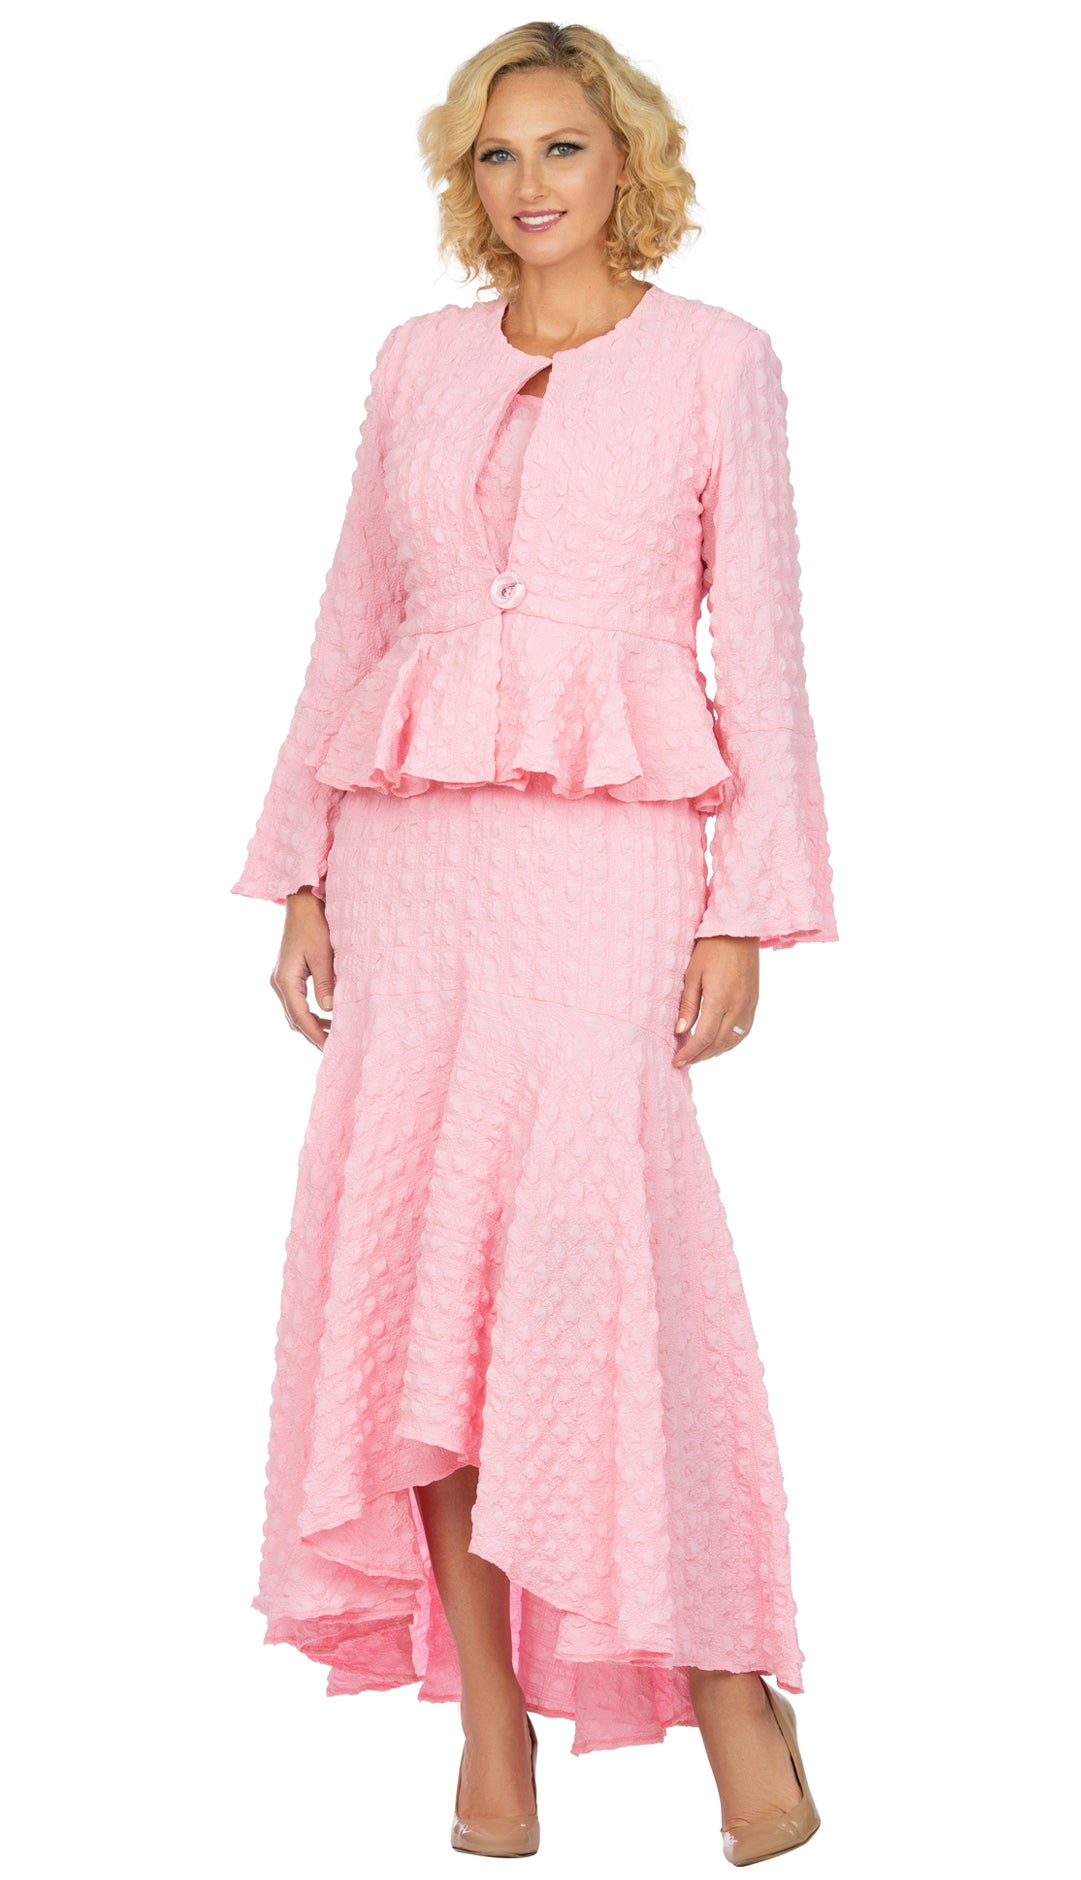 Giovanna Suit 0943-Pink - Church Suits For Less